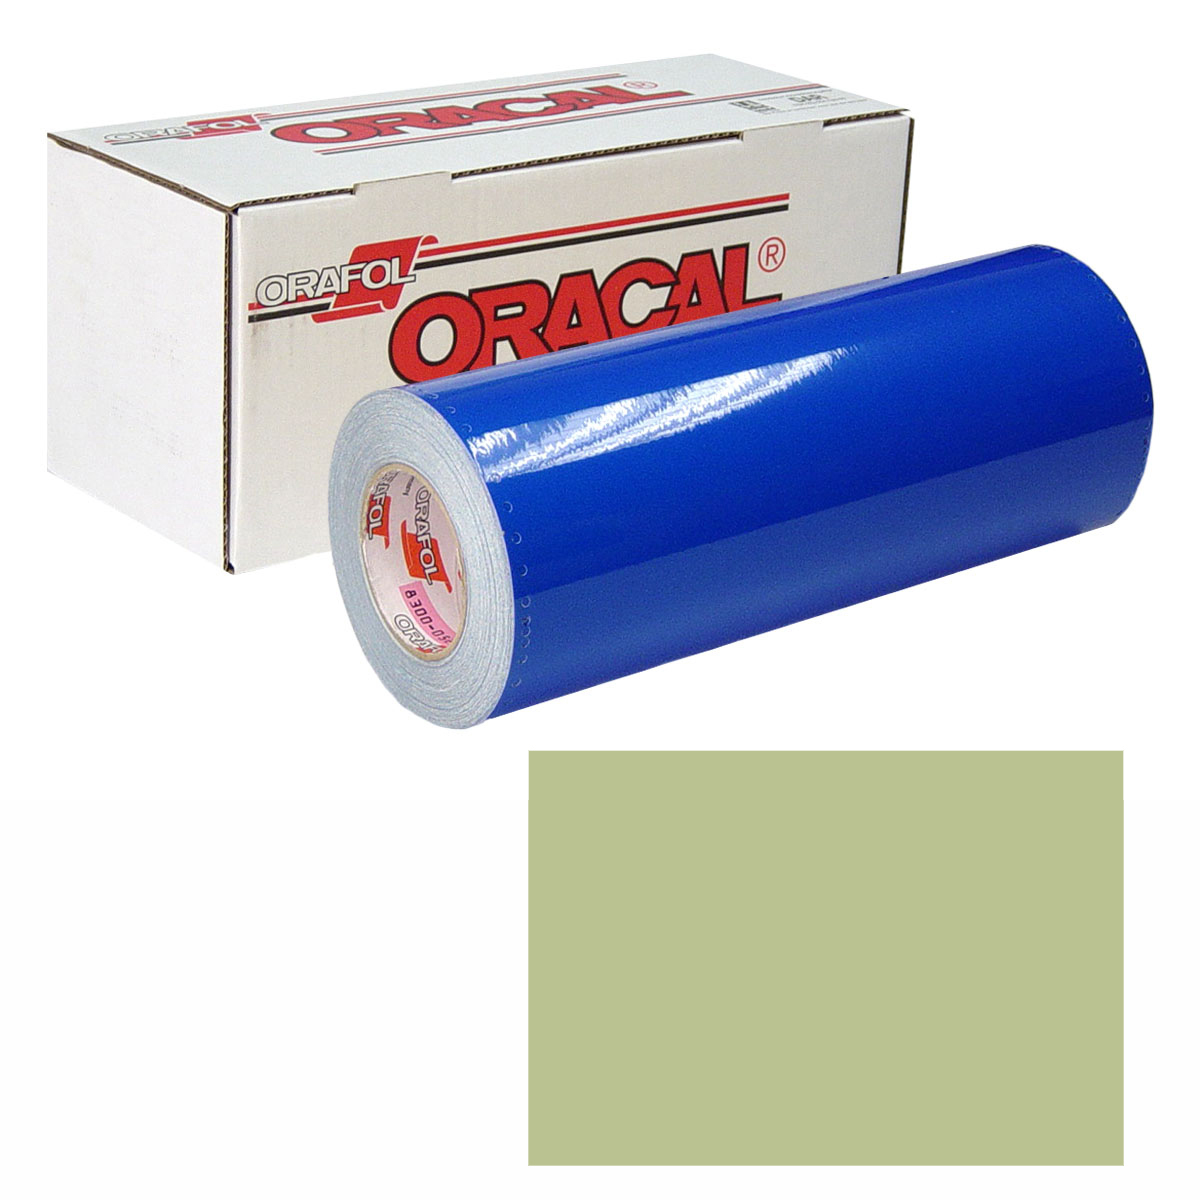 ORACAL 631 Unp 24in X 50yd 494 Celadon